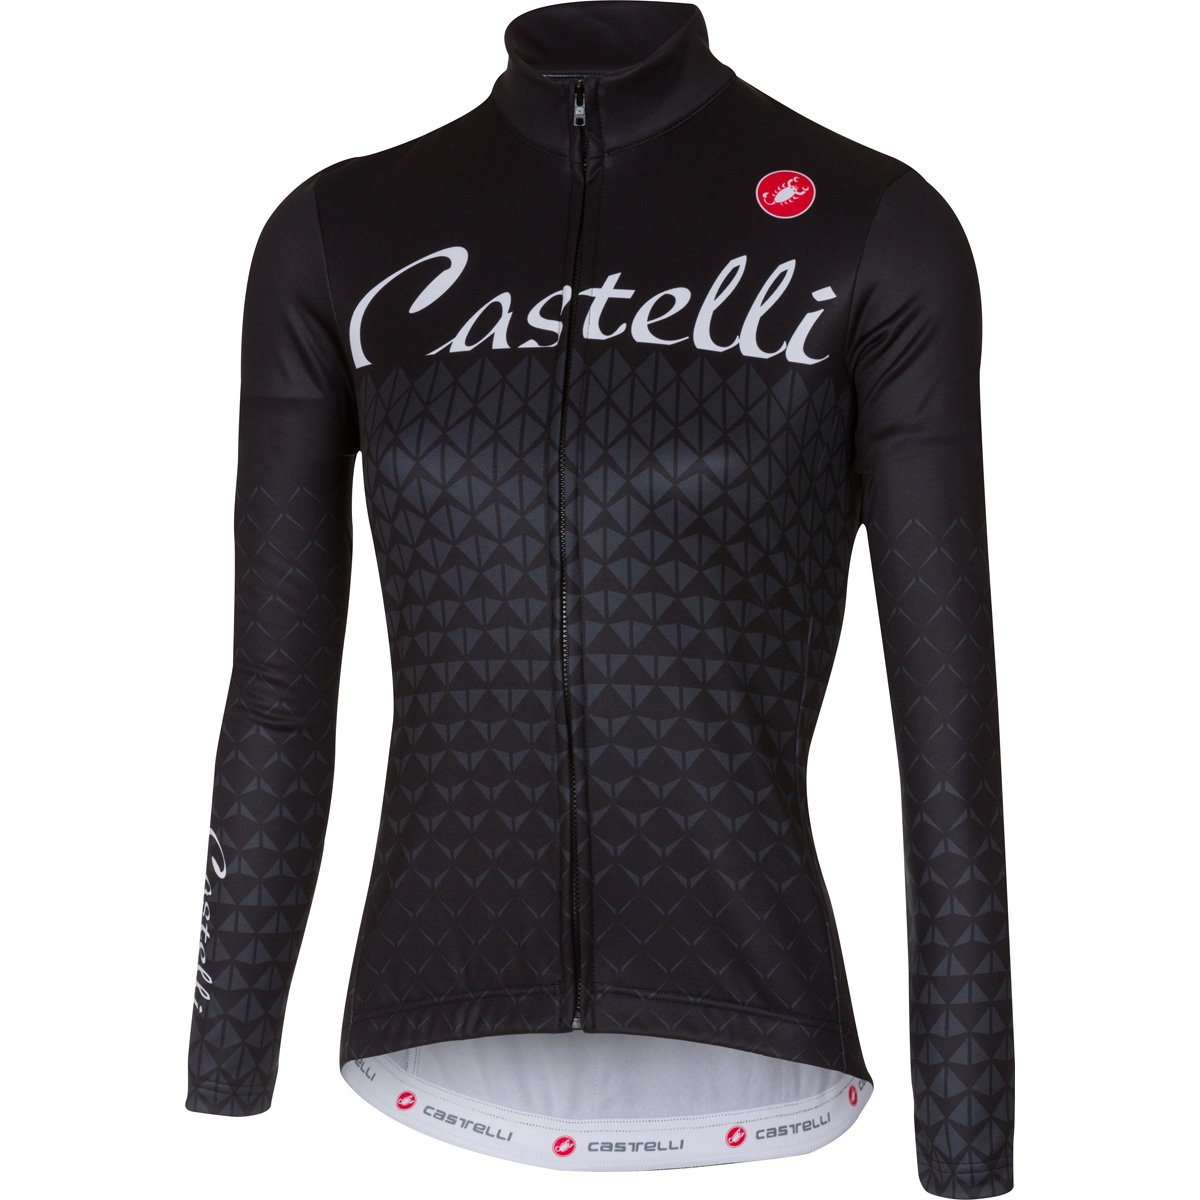 Castelli Women's Ciao Jersey - Anthracite/Light Black